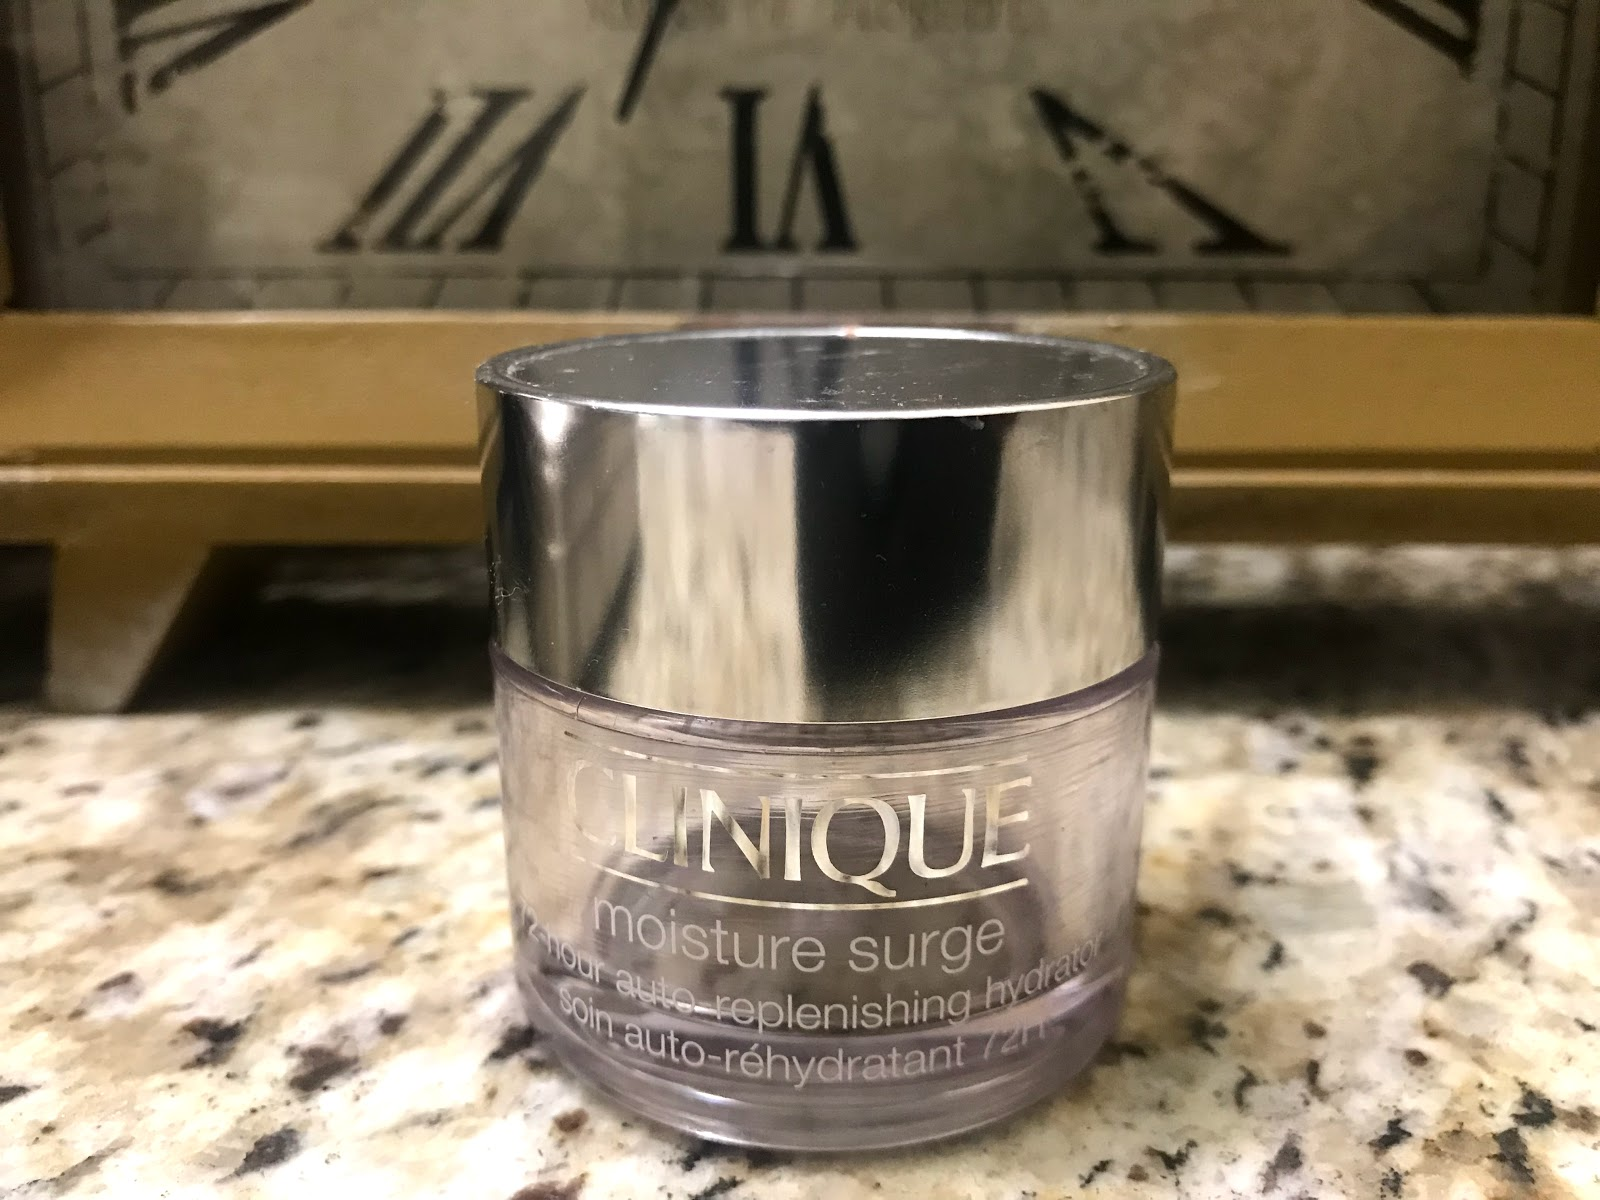 Image: Empty Clinque Moisture Surge . Tangie Bell is sharing her skincare empties to motivate and inspire